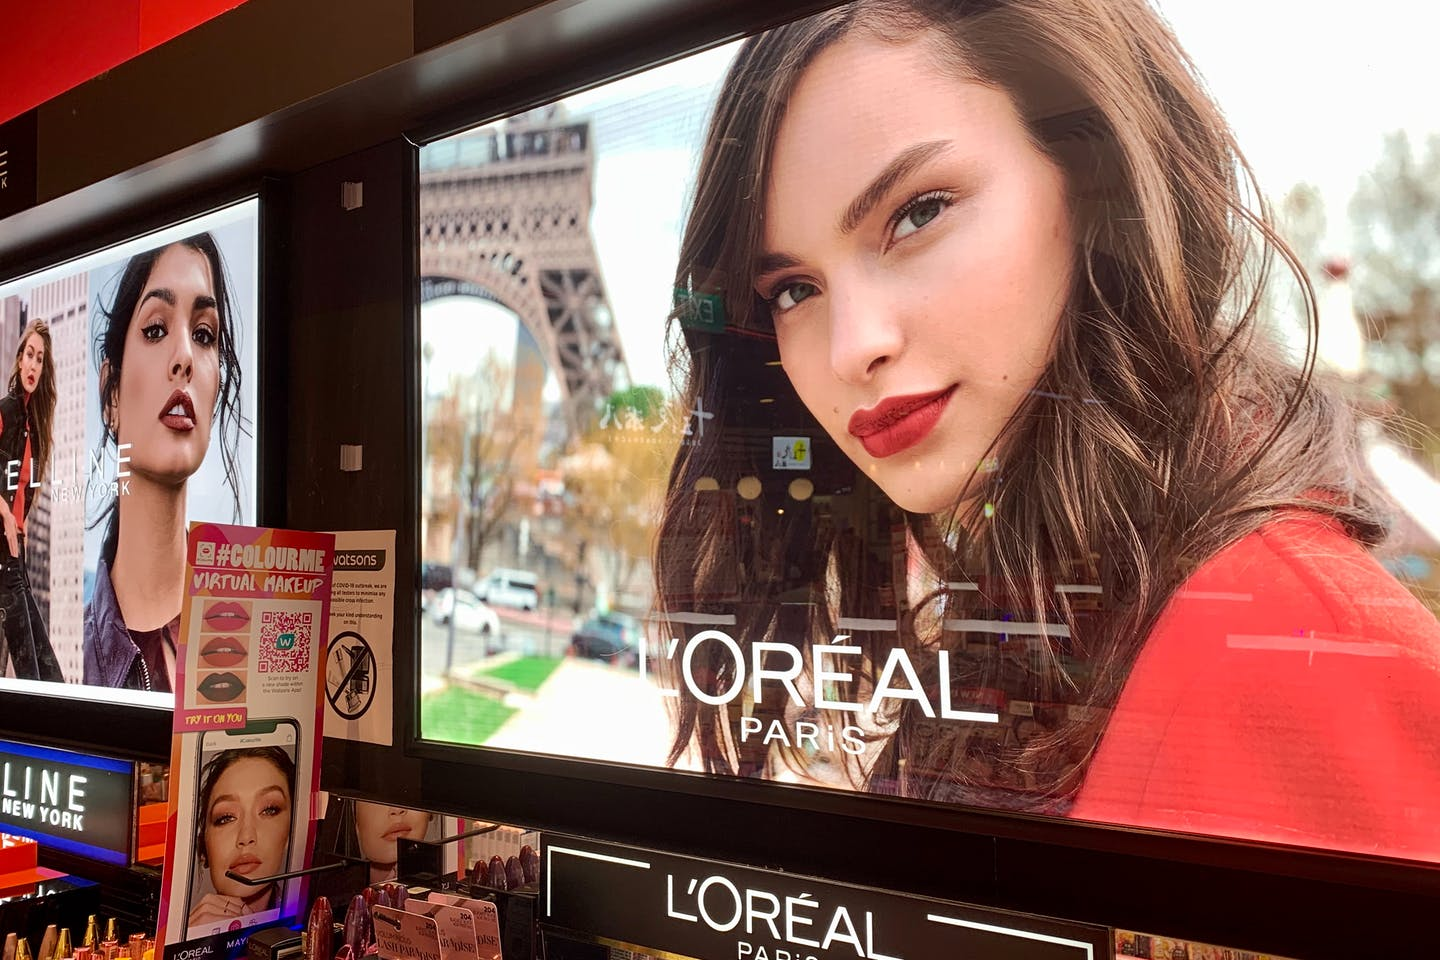 A L'Oreal display in a pharmacy in Singapore.